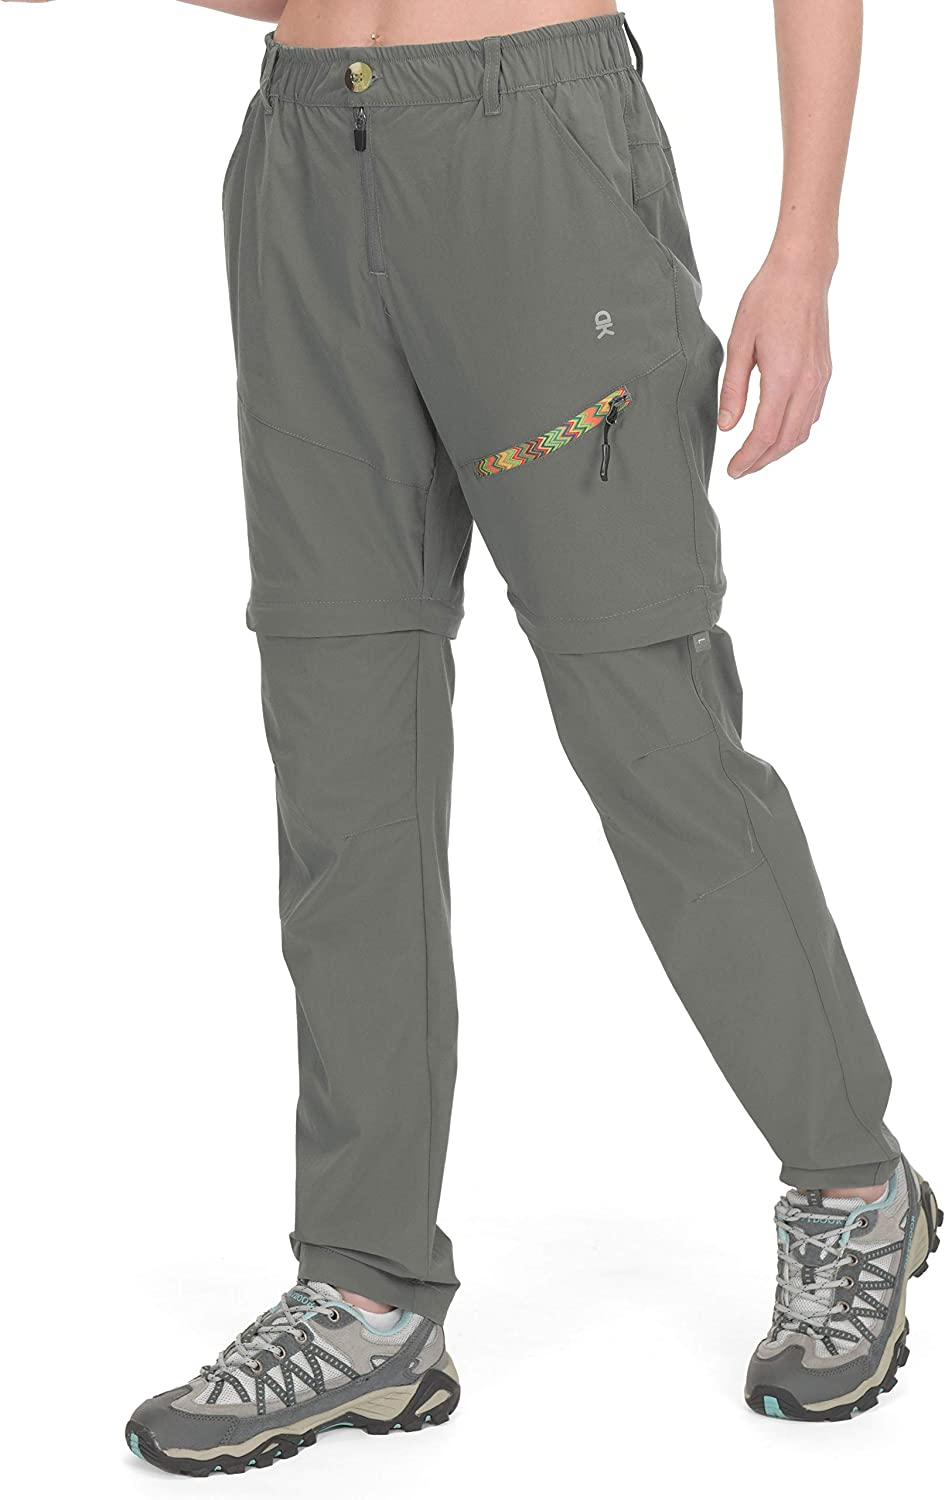 Little Alternative dealer Donkey Andy Women's Convertible Directly managed store Lightweight Pants Hiking